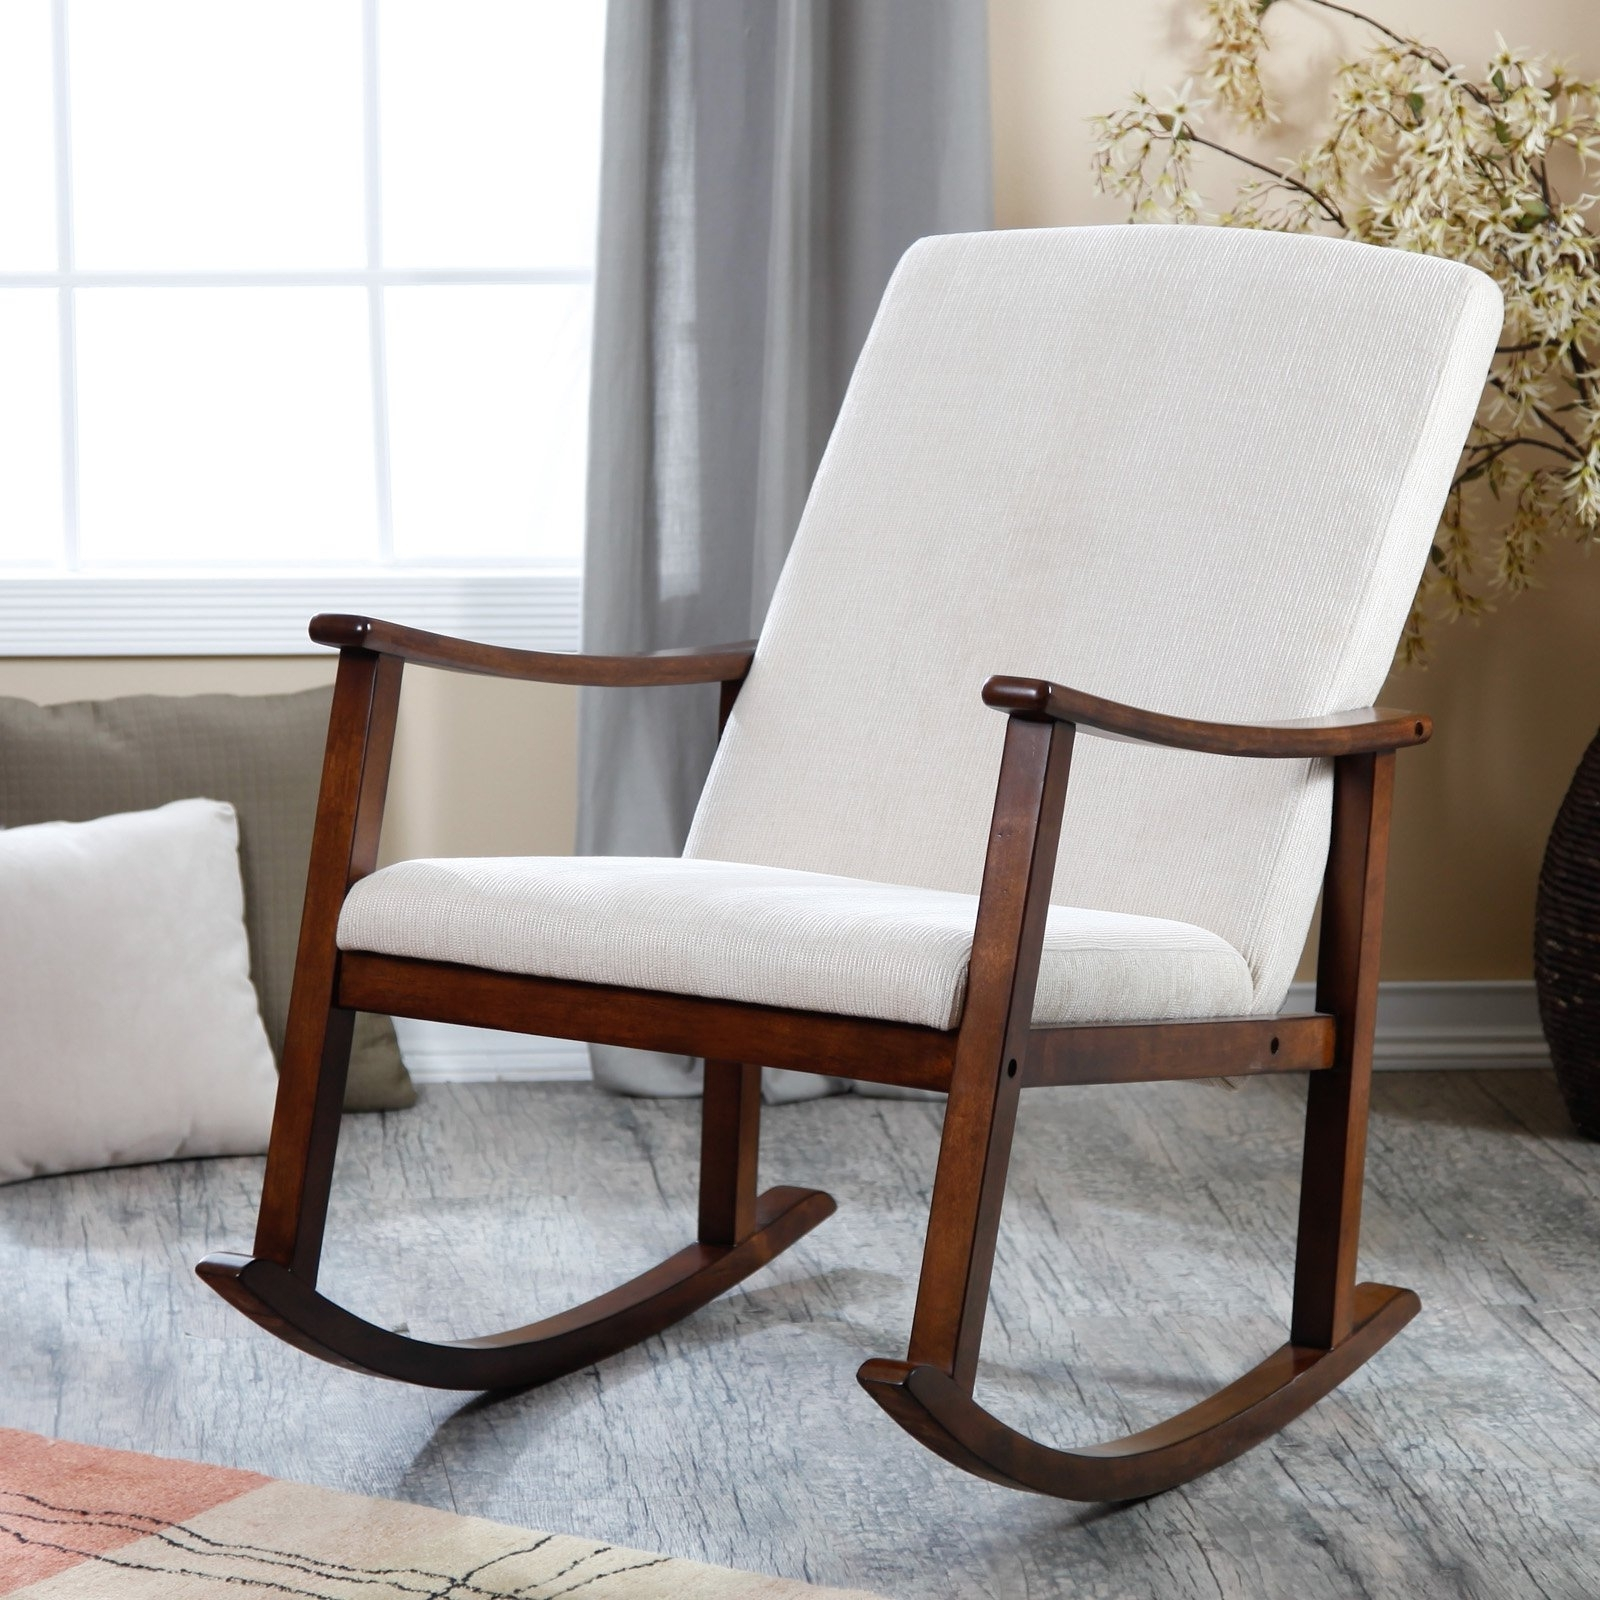 Modern Rocking Chair Ikea – Modern Rocking Chair And The Old Rocking With Regard To 2018 Ikea Rocking Chairs (View 13 of 20)